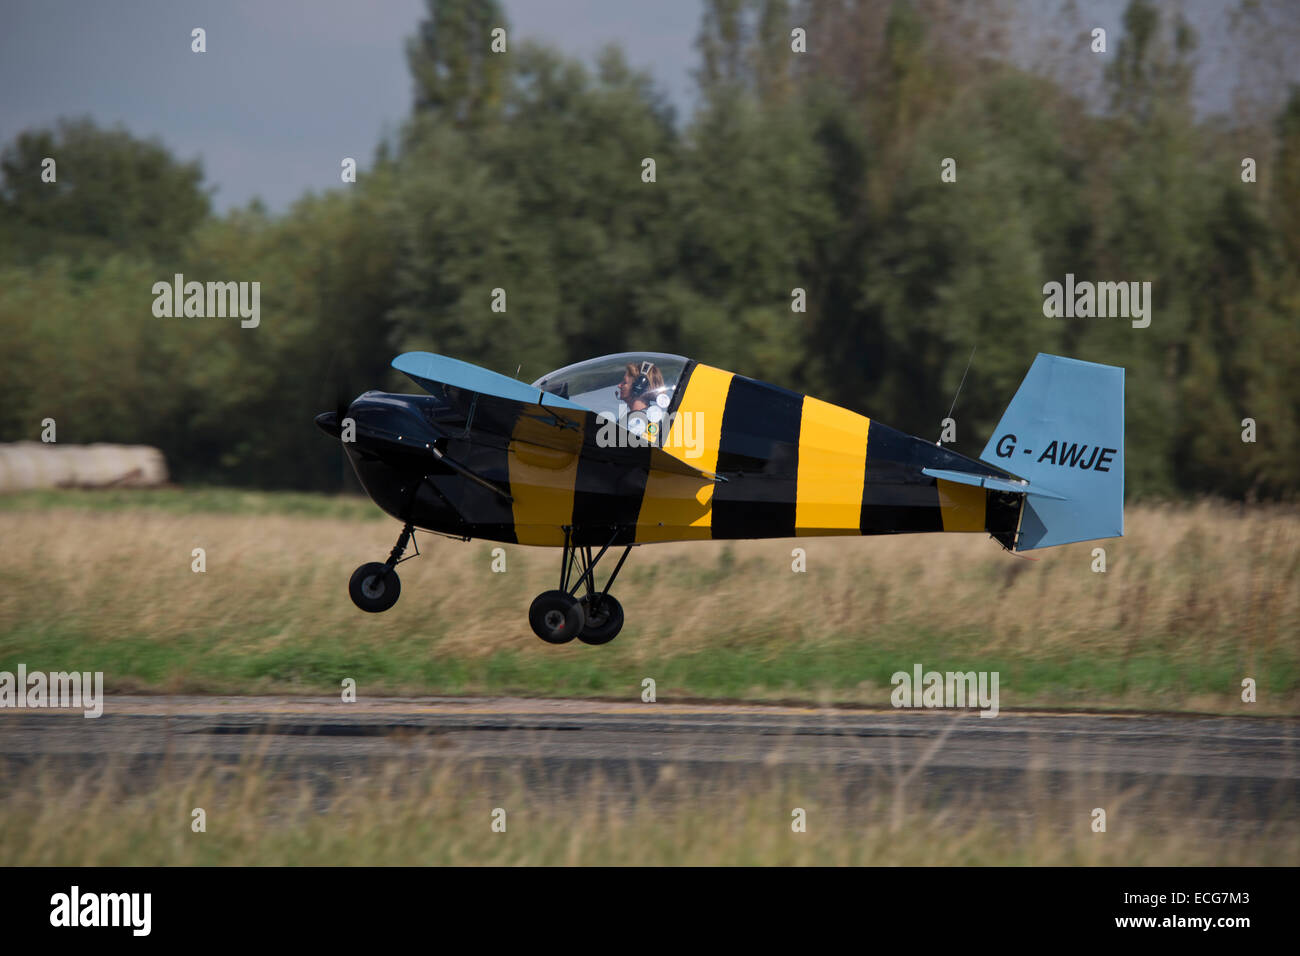 Tipsy T66 RA45 Series 3 Nipper G-AWJE taking-off from Sturgate Airfield - Stock Image